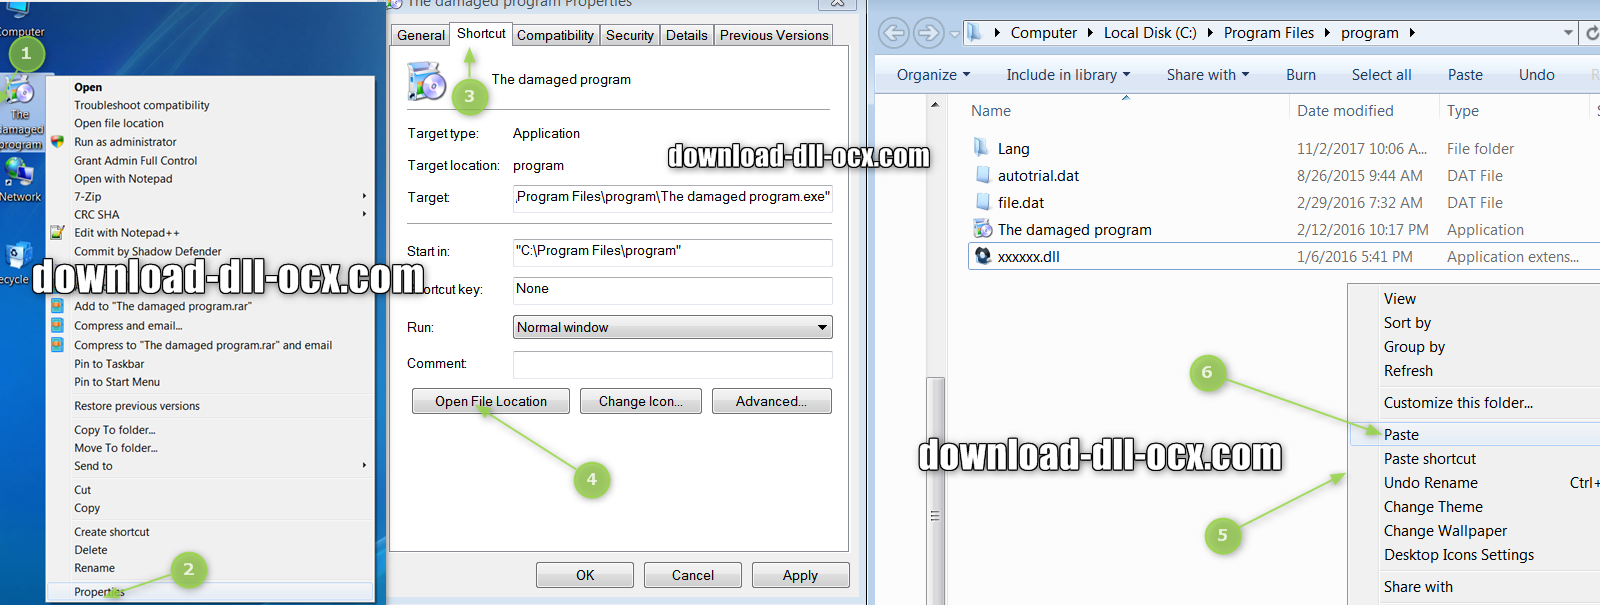 how to install xdebug-4.3.6-2.0.0beta1.dll file? for fix missing